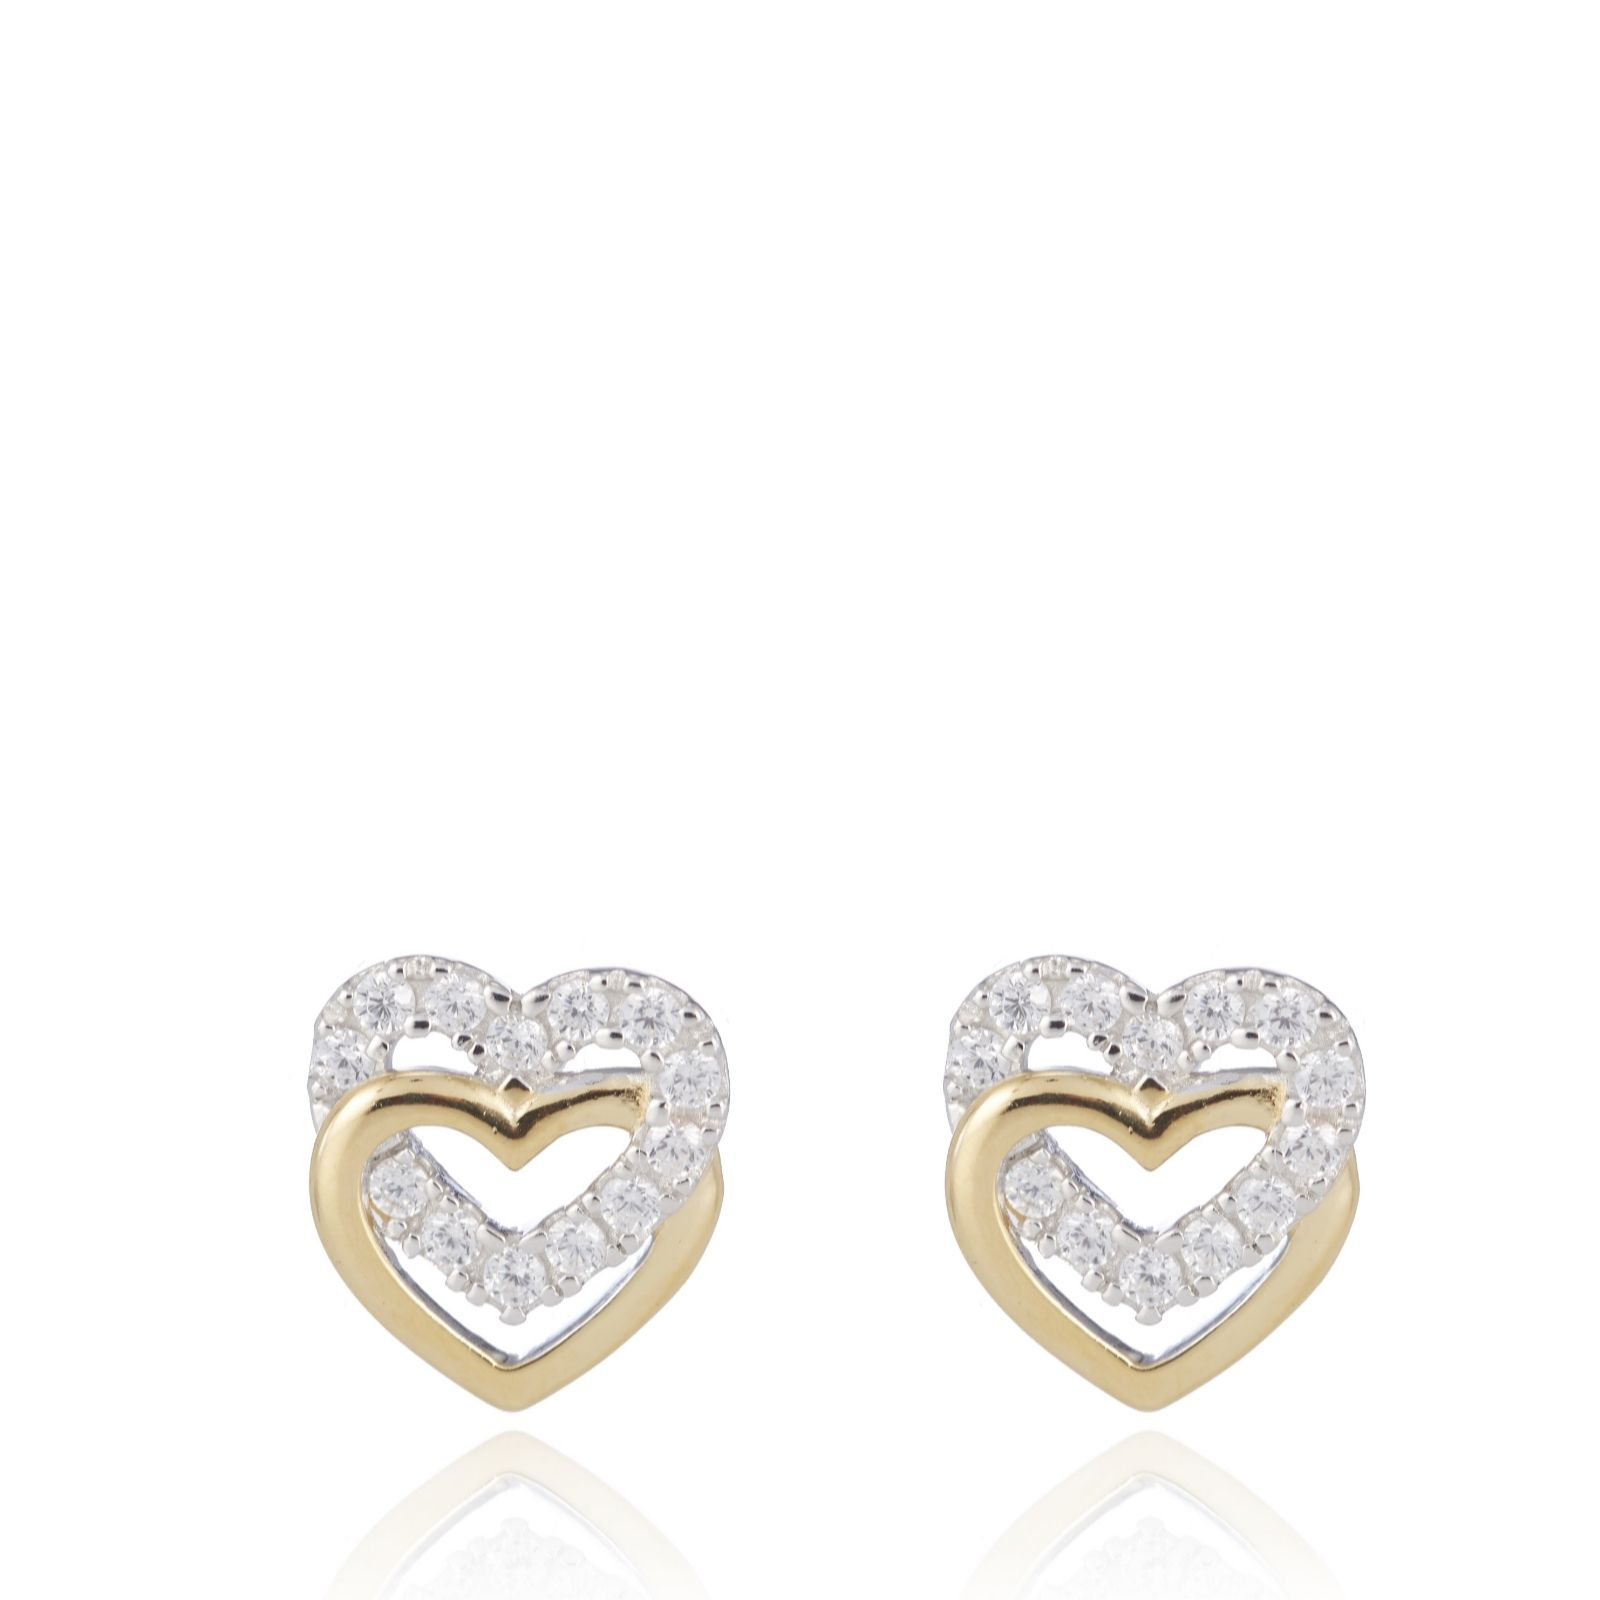 80f0c1fdd Diamonique 0.2ct tw Double Heart Stud Earrings Sterling Silver - QVC ...